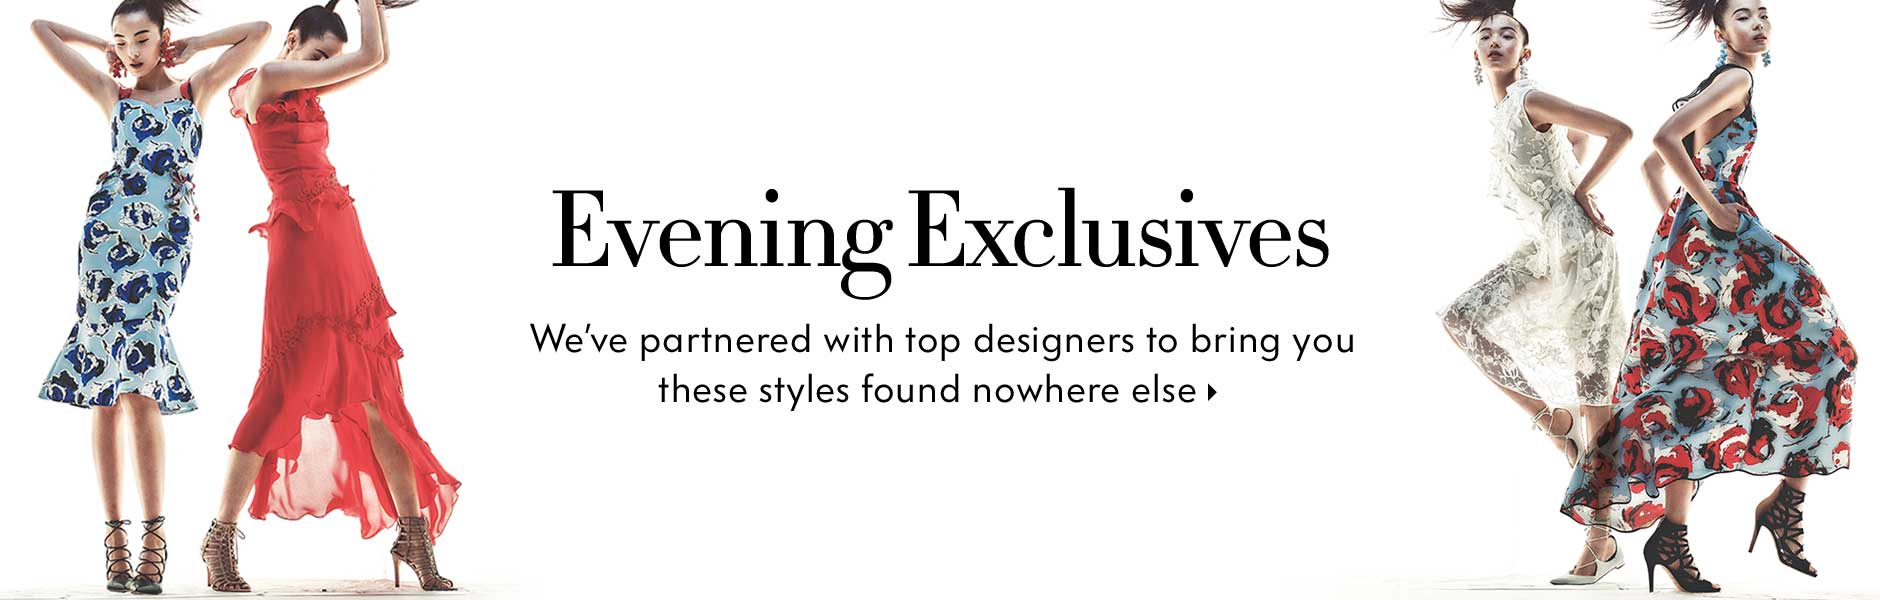 Evening Exclusives - We've partnered with top designers to bring you these styles found nowhere else